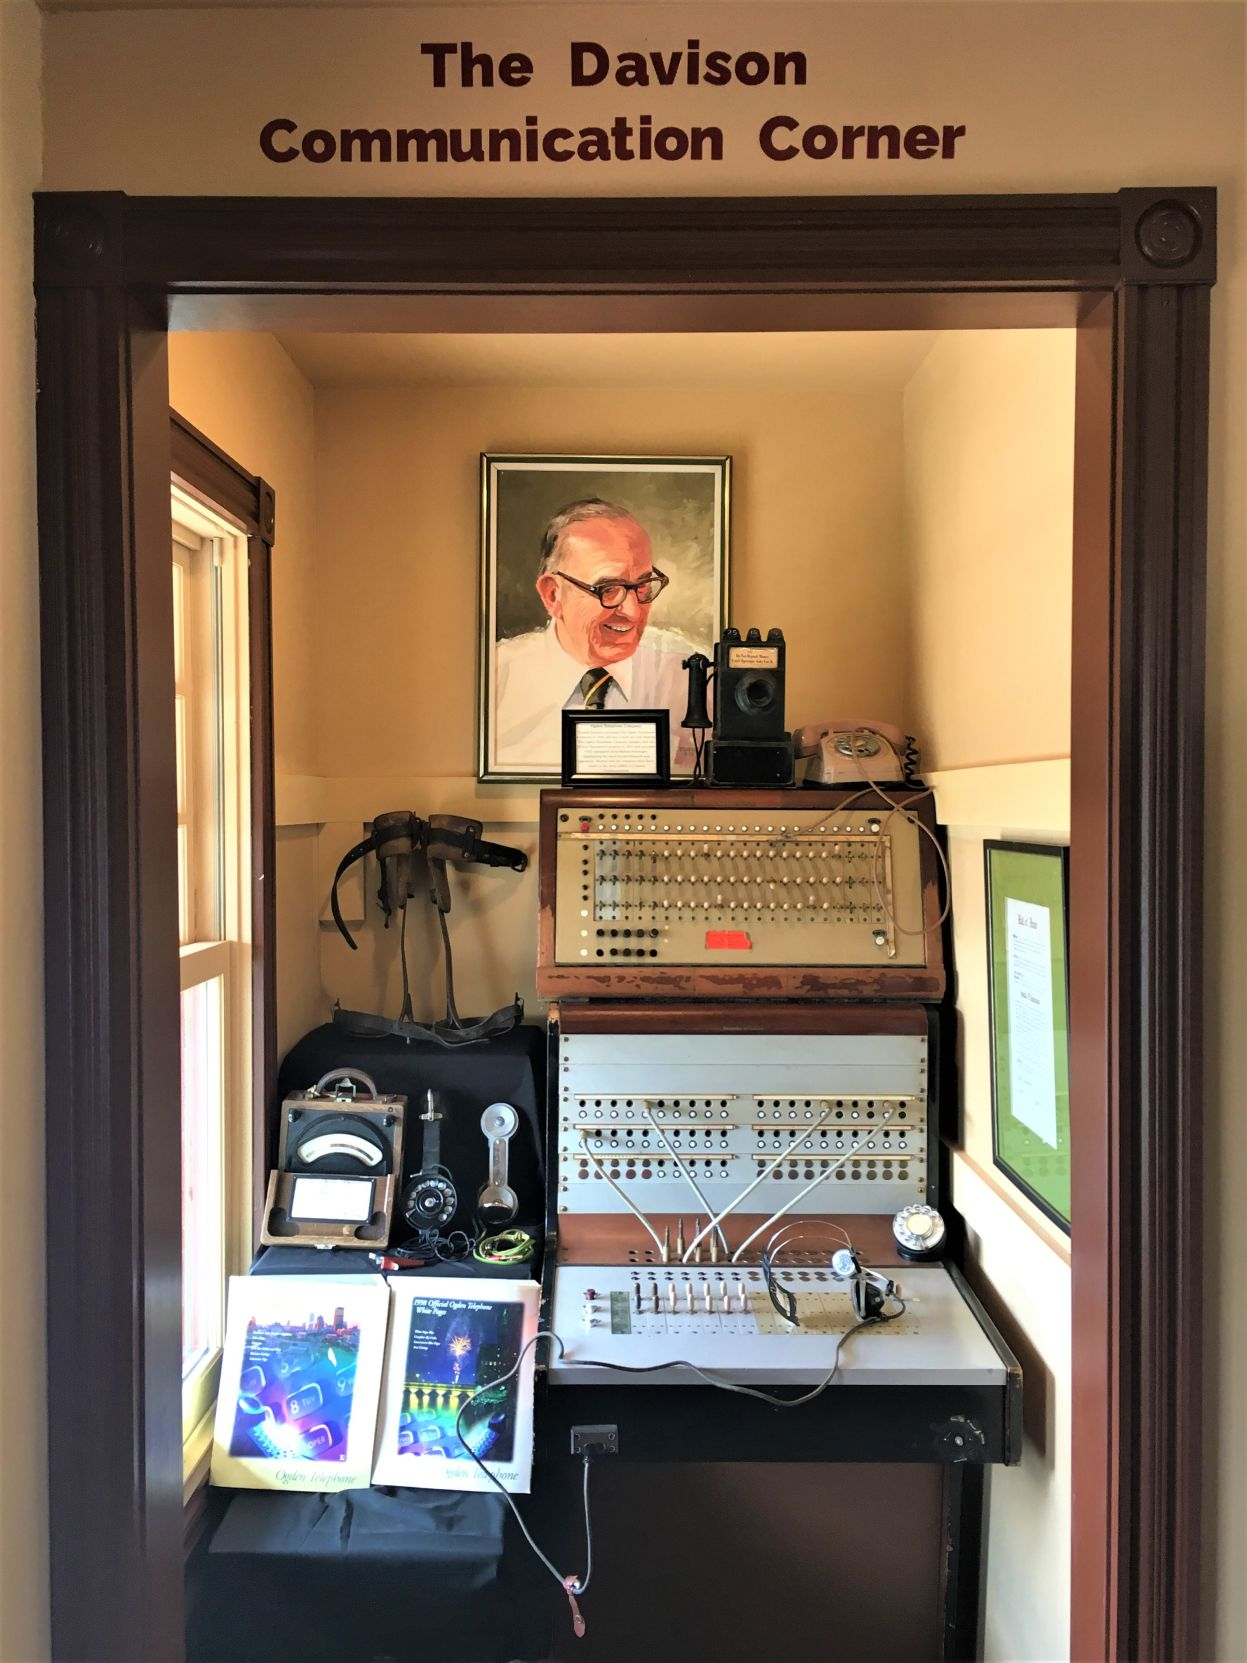 Dedicated Davison Communication Corner